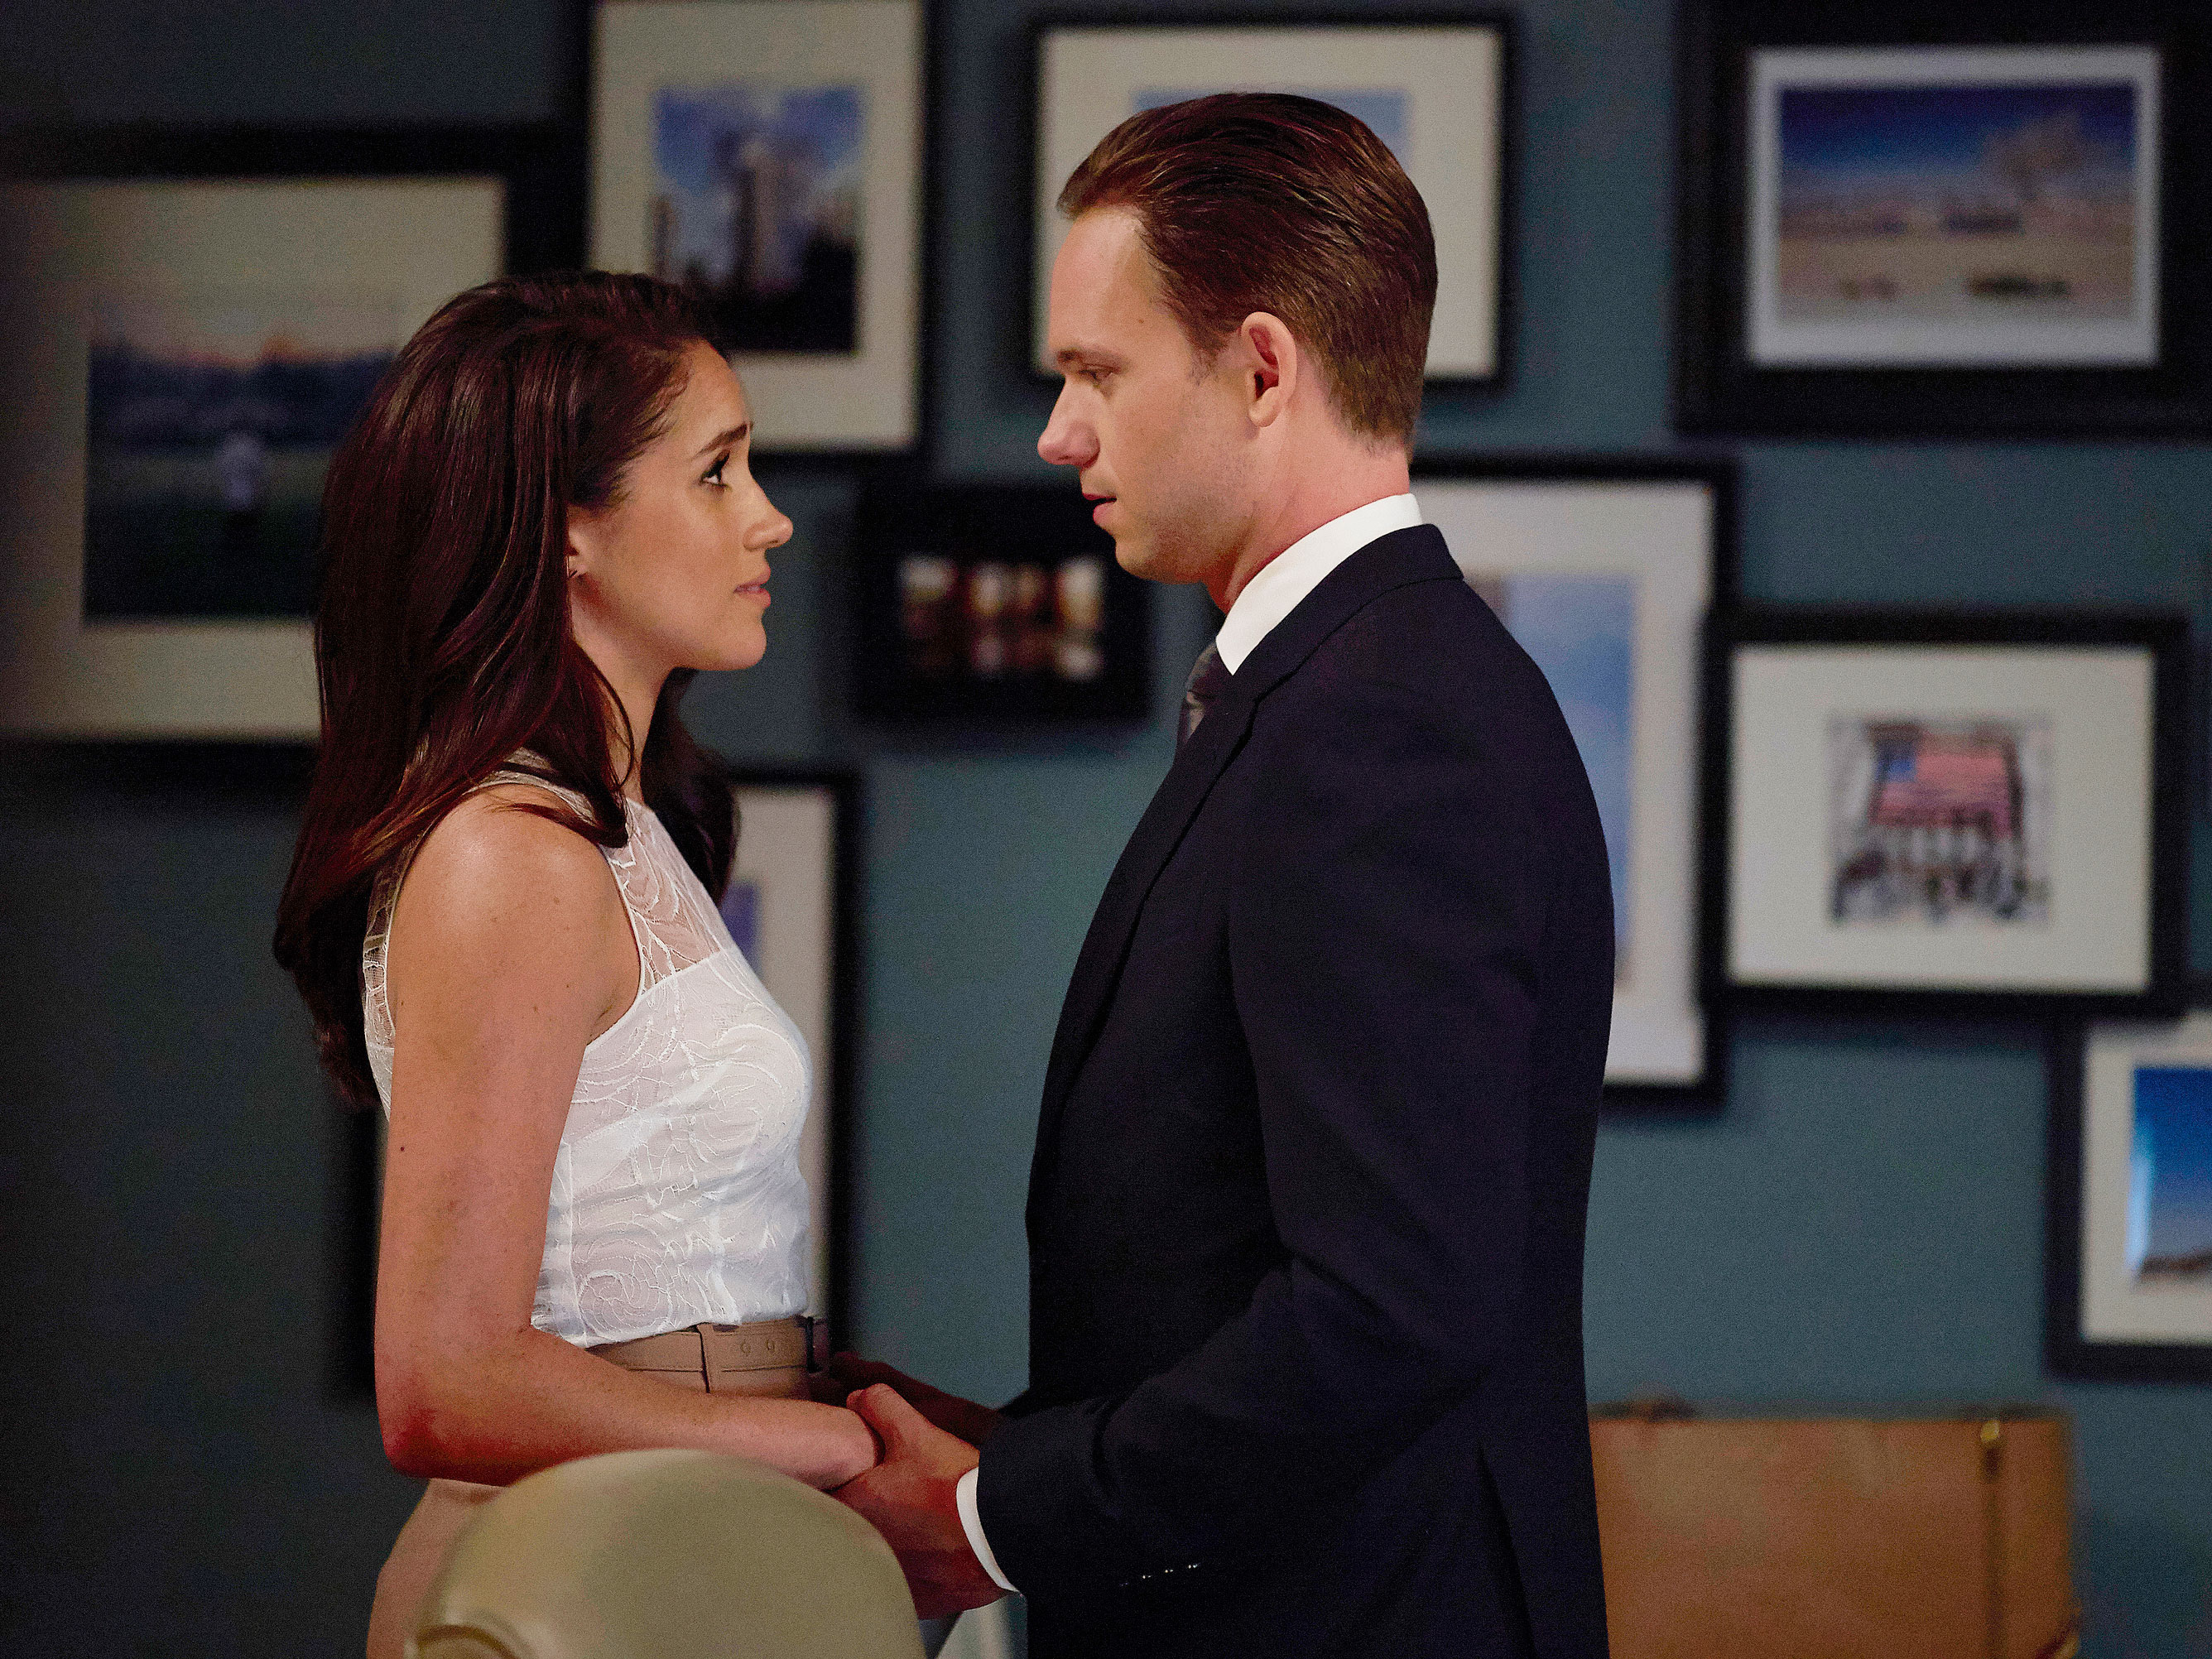 Meghan Markle 'reappears' in the final season of Suits for hilarious joke about her new royal life